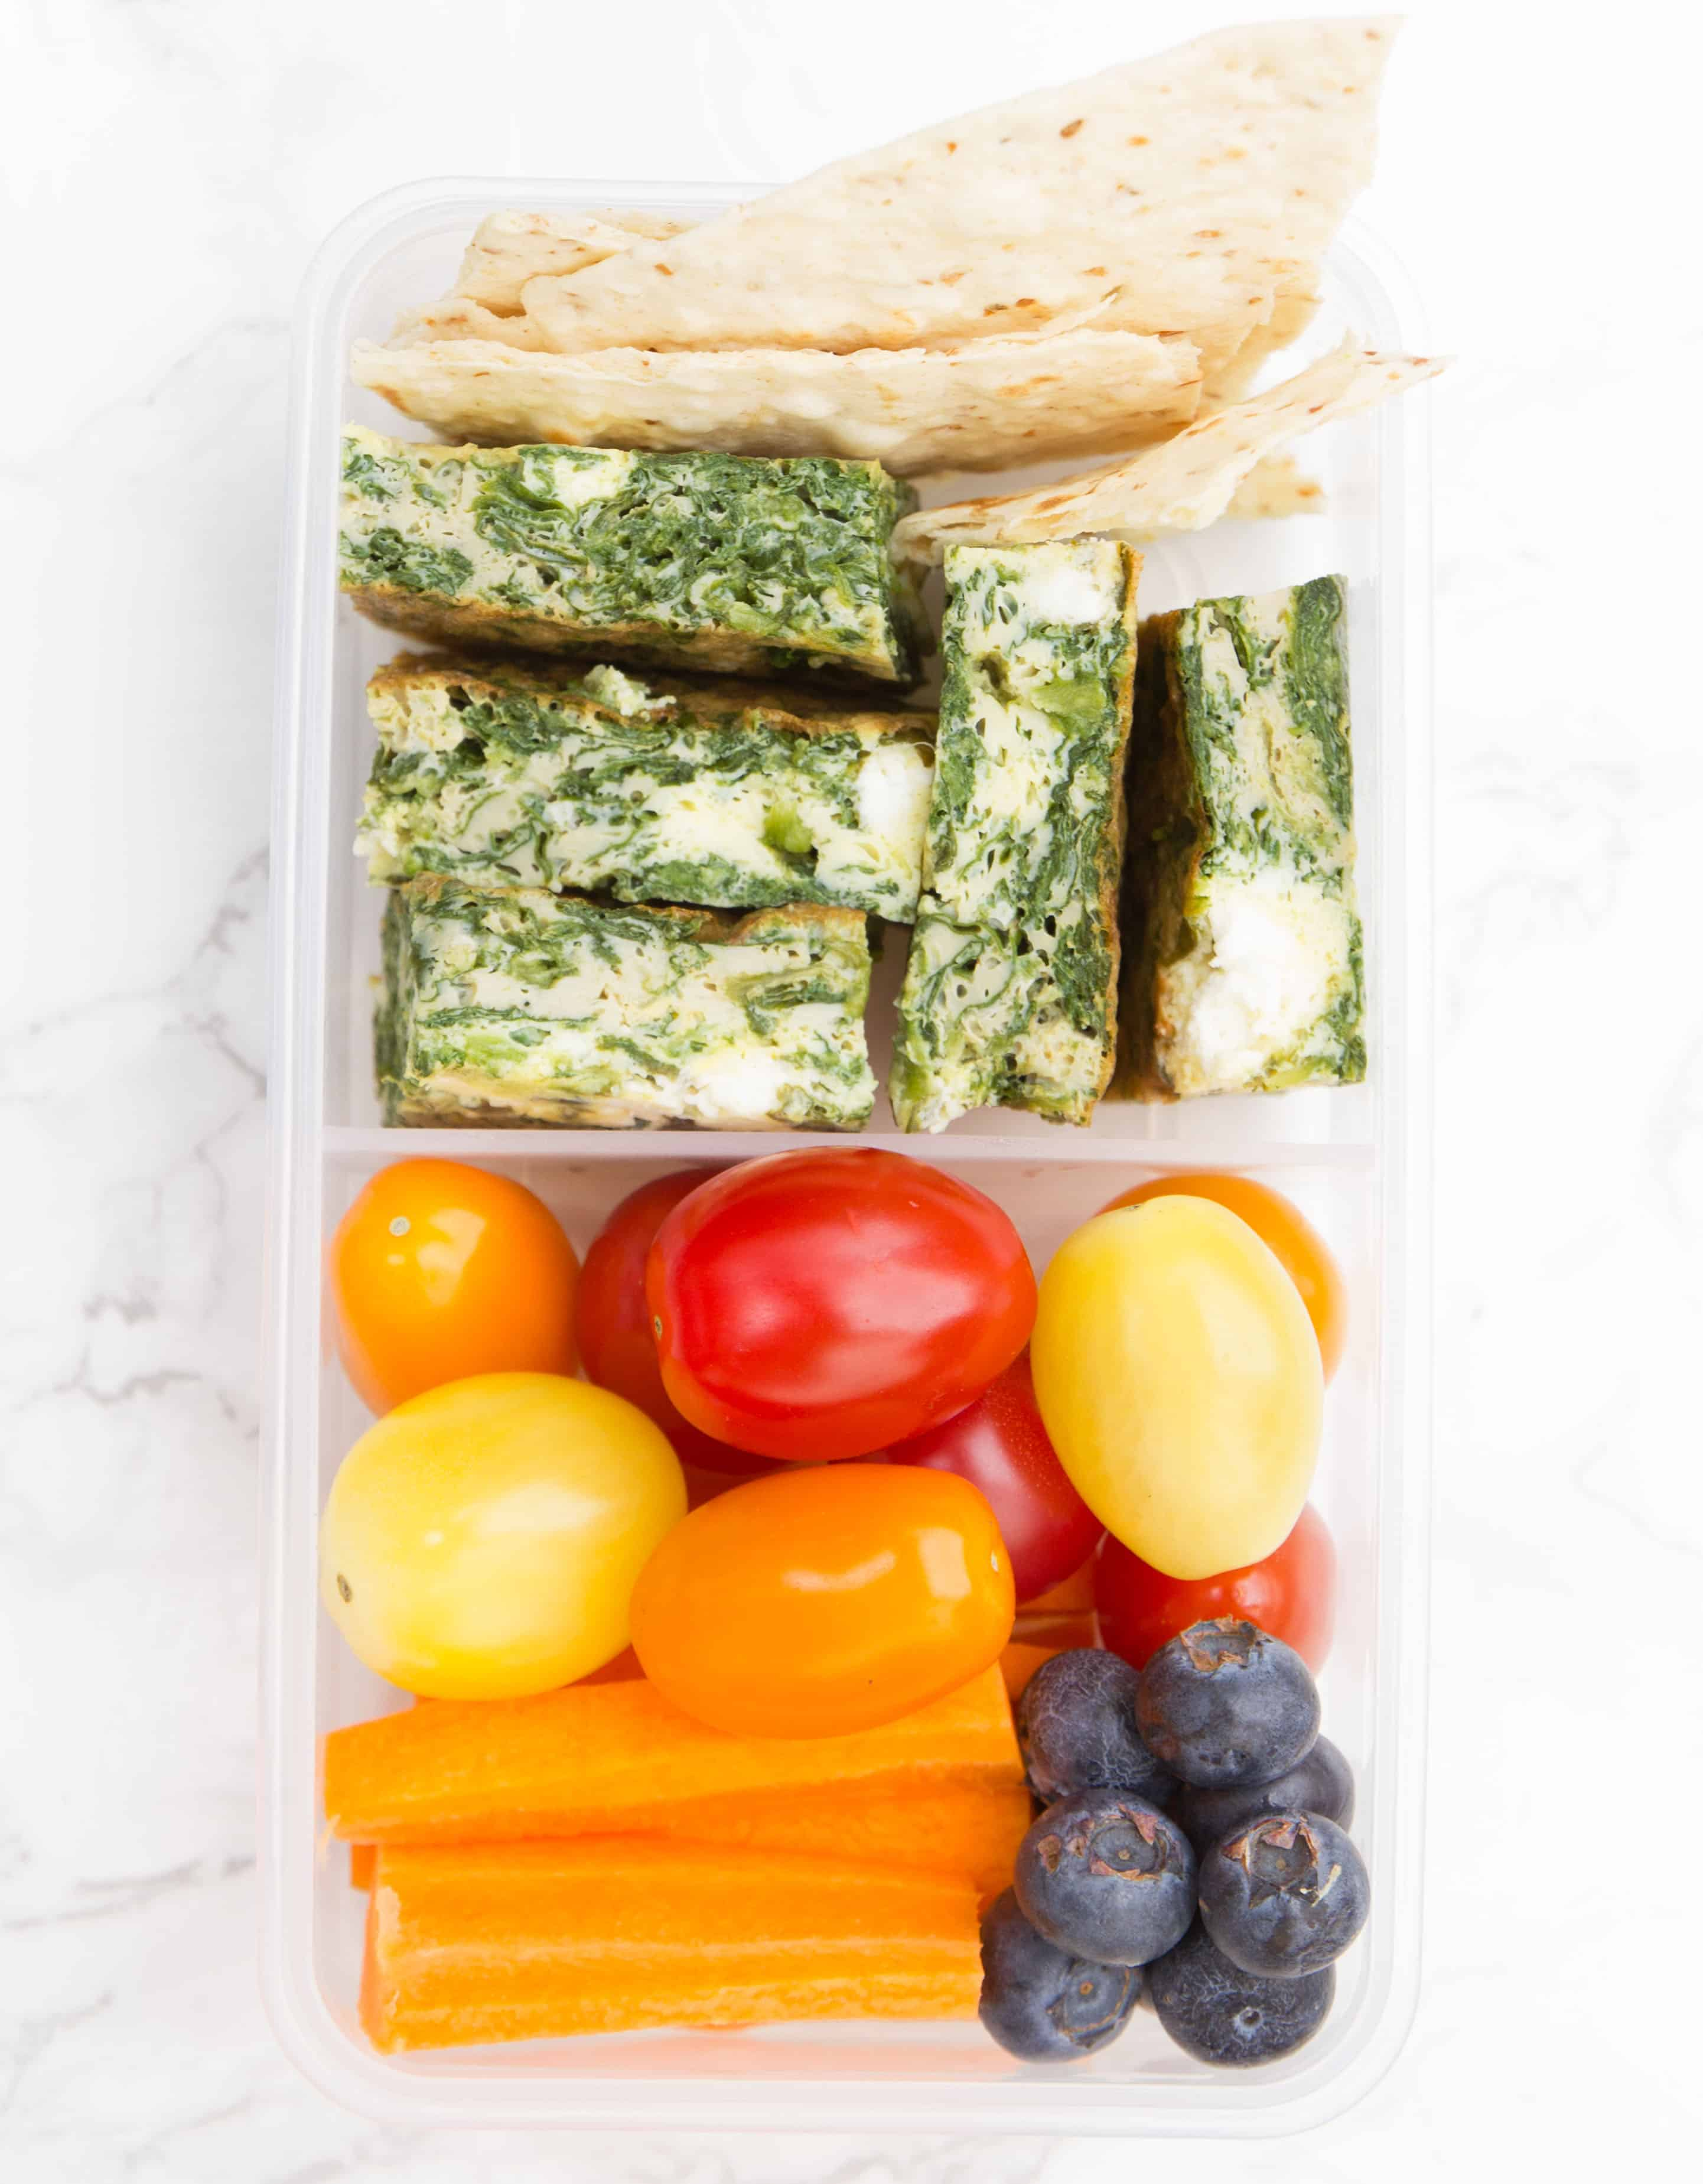 Cubes of baked frittata in a rectangular meal prep container with vegetables and blueberries.